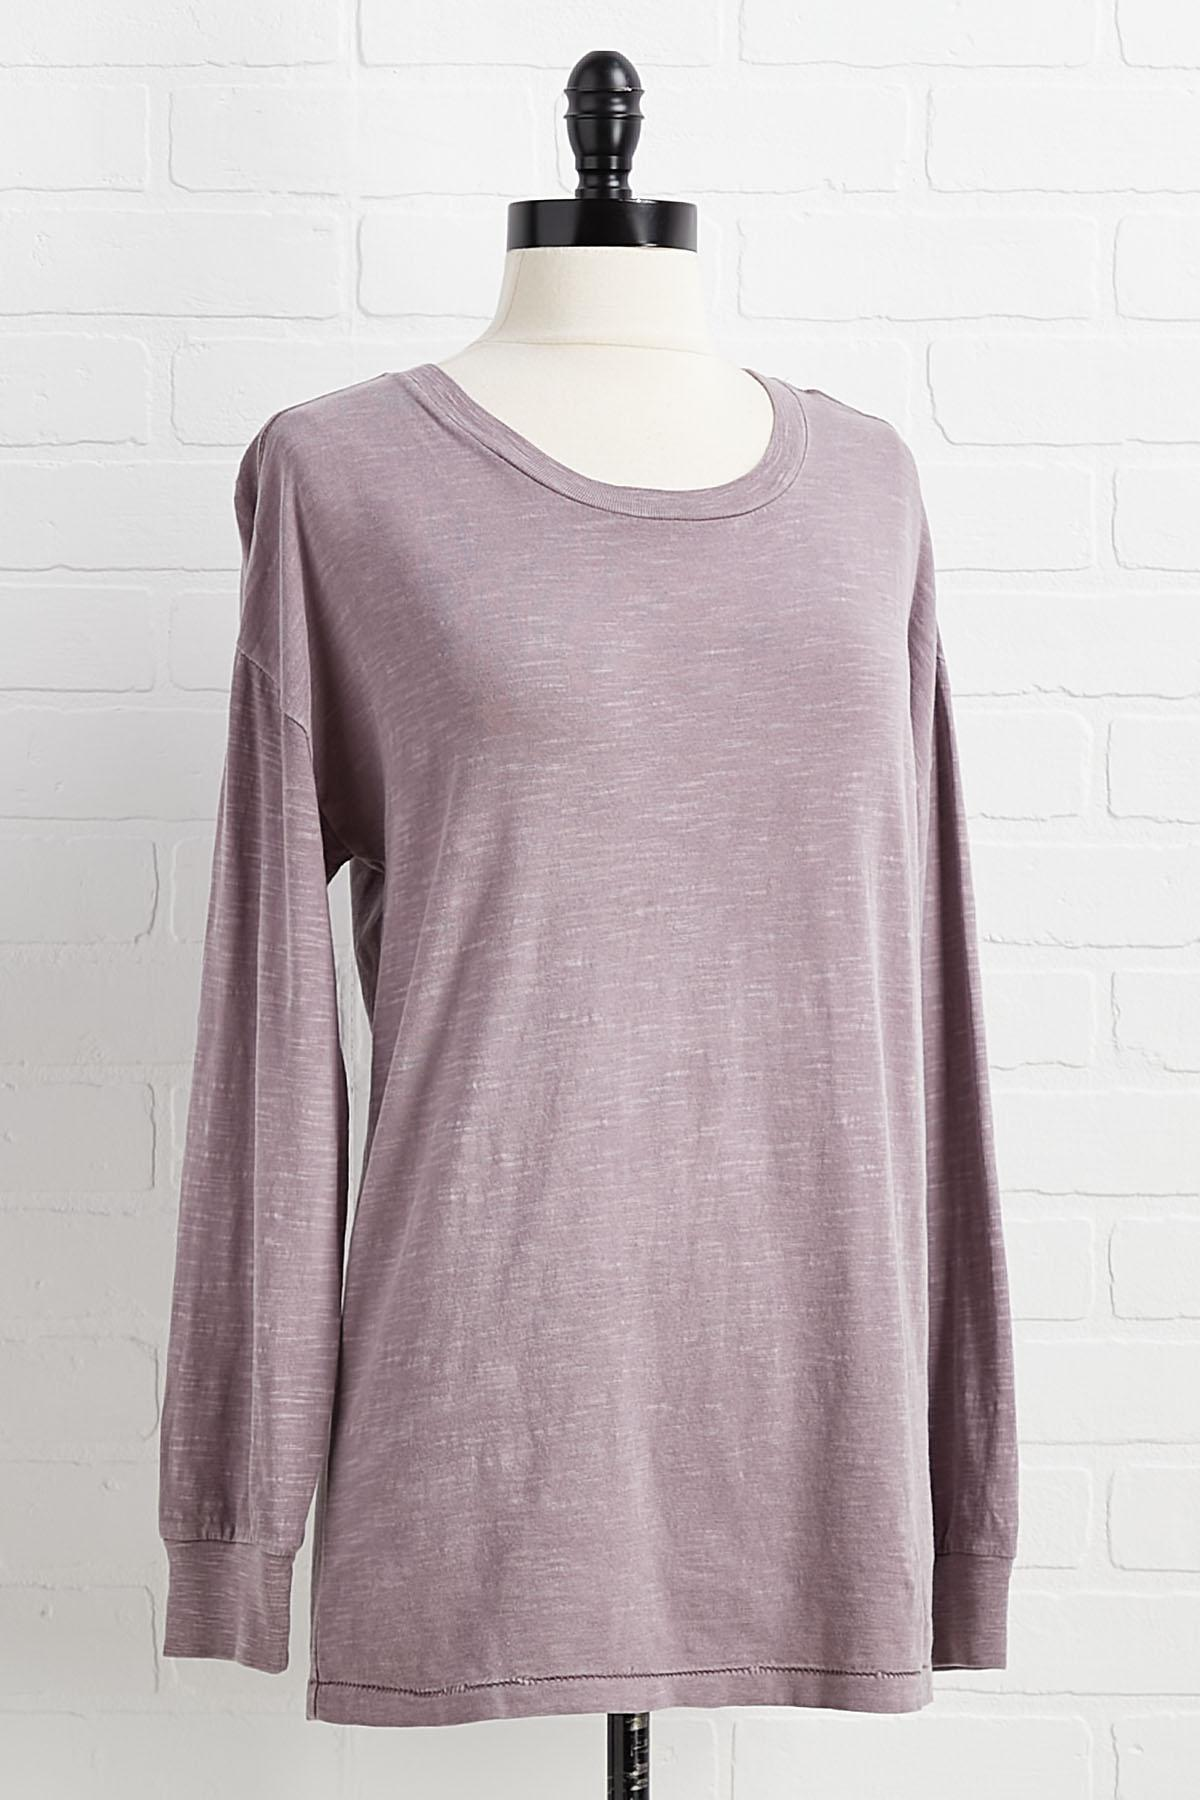 But First Comfort Top